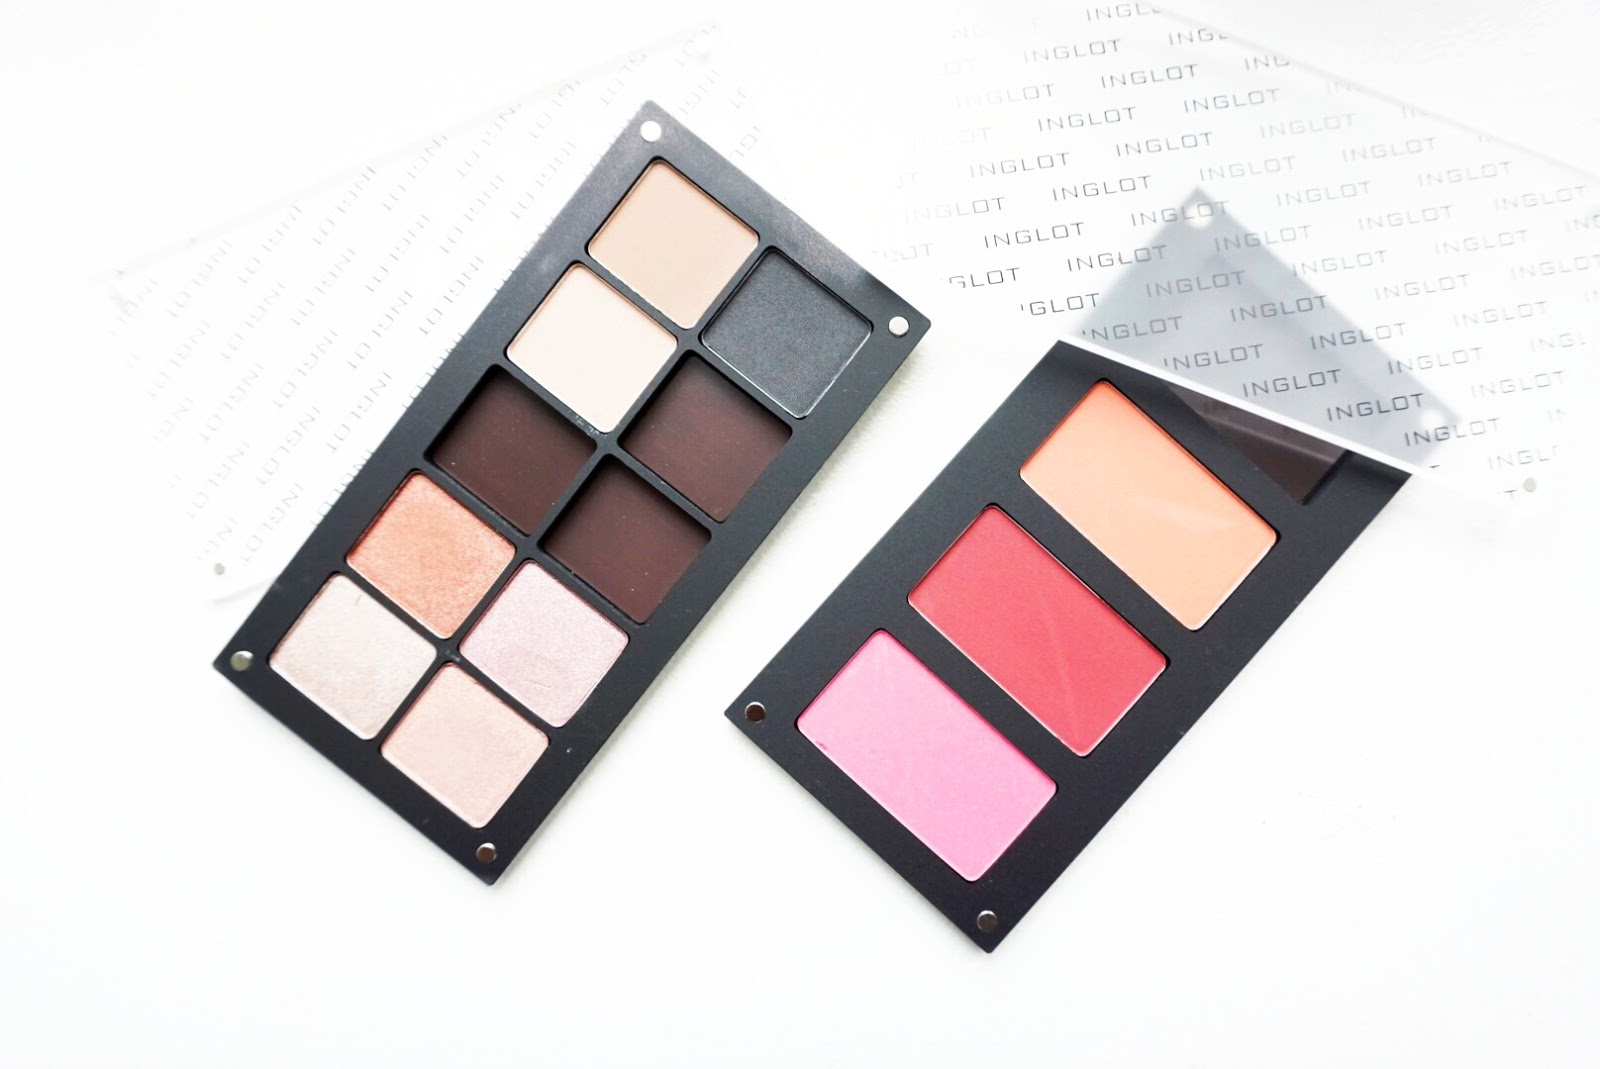 Inglot eyeshadows and blush swatches